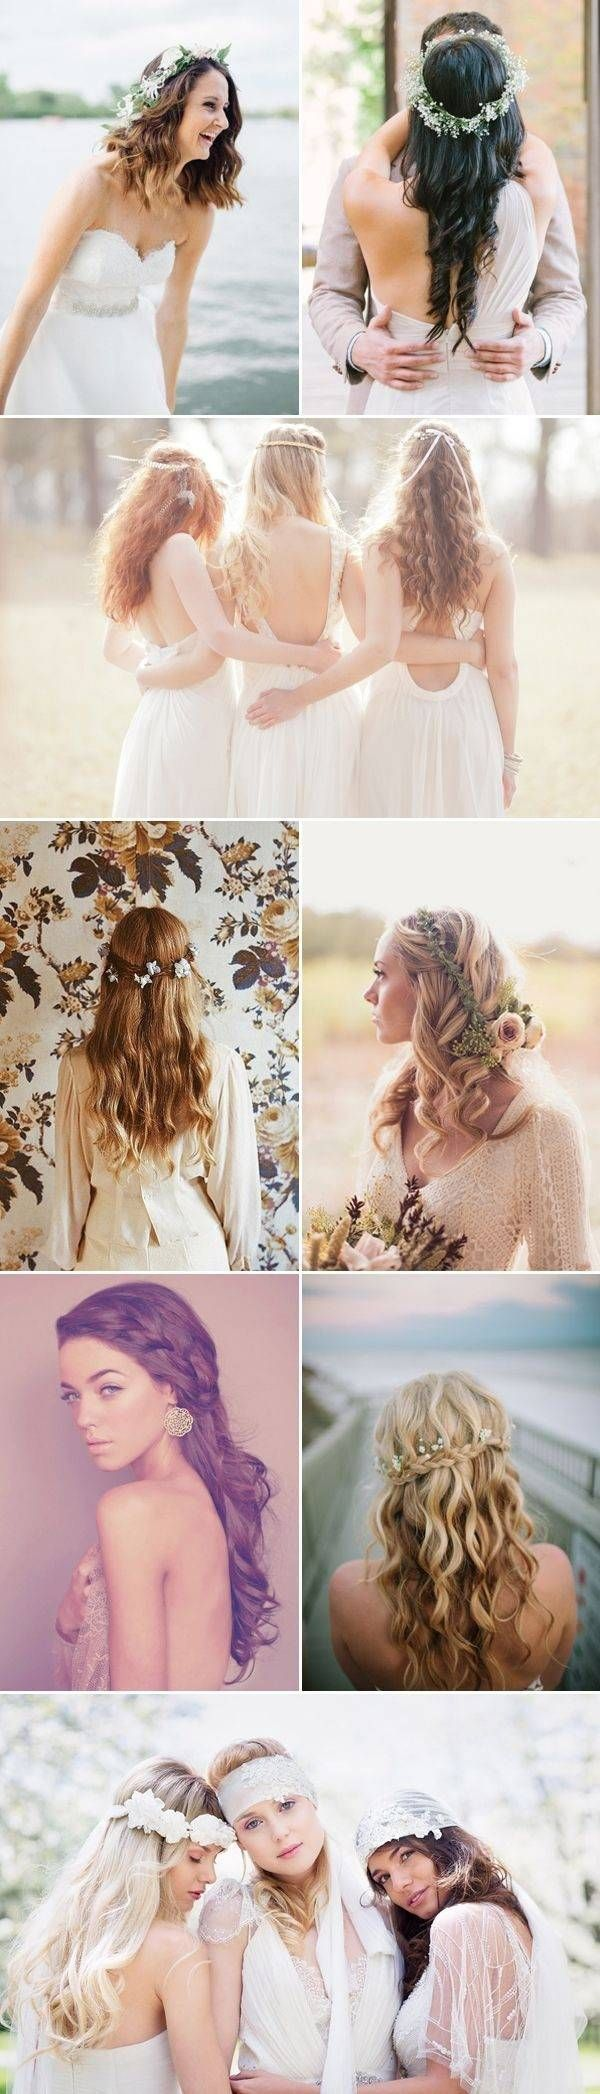 Bride Long Hairstyles for Wedding Hairstyles 2014, Bride Long Hairstyles,  Bridesmaid Updo hairstyles,  Bride Ponytail Hairstyles,   Bridesmaid Long Hairstyles ,